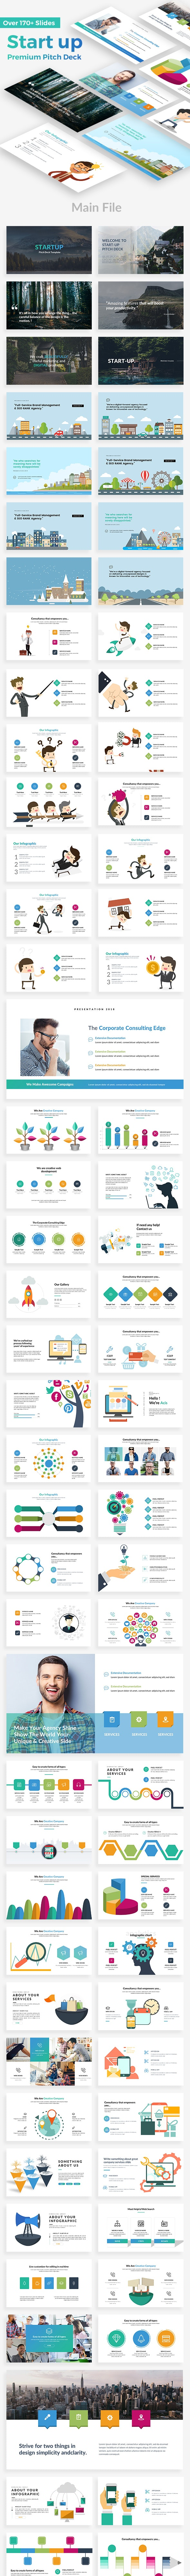 Startup Pitch Deck Powerpoint Template - Business PowerPoint Templates